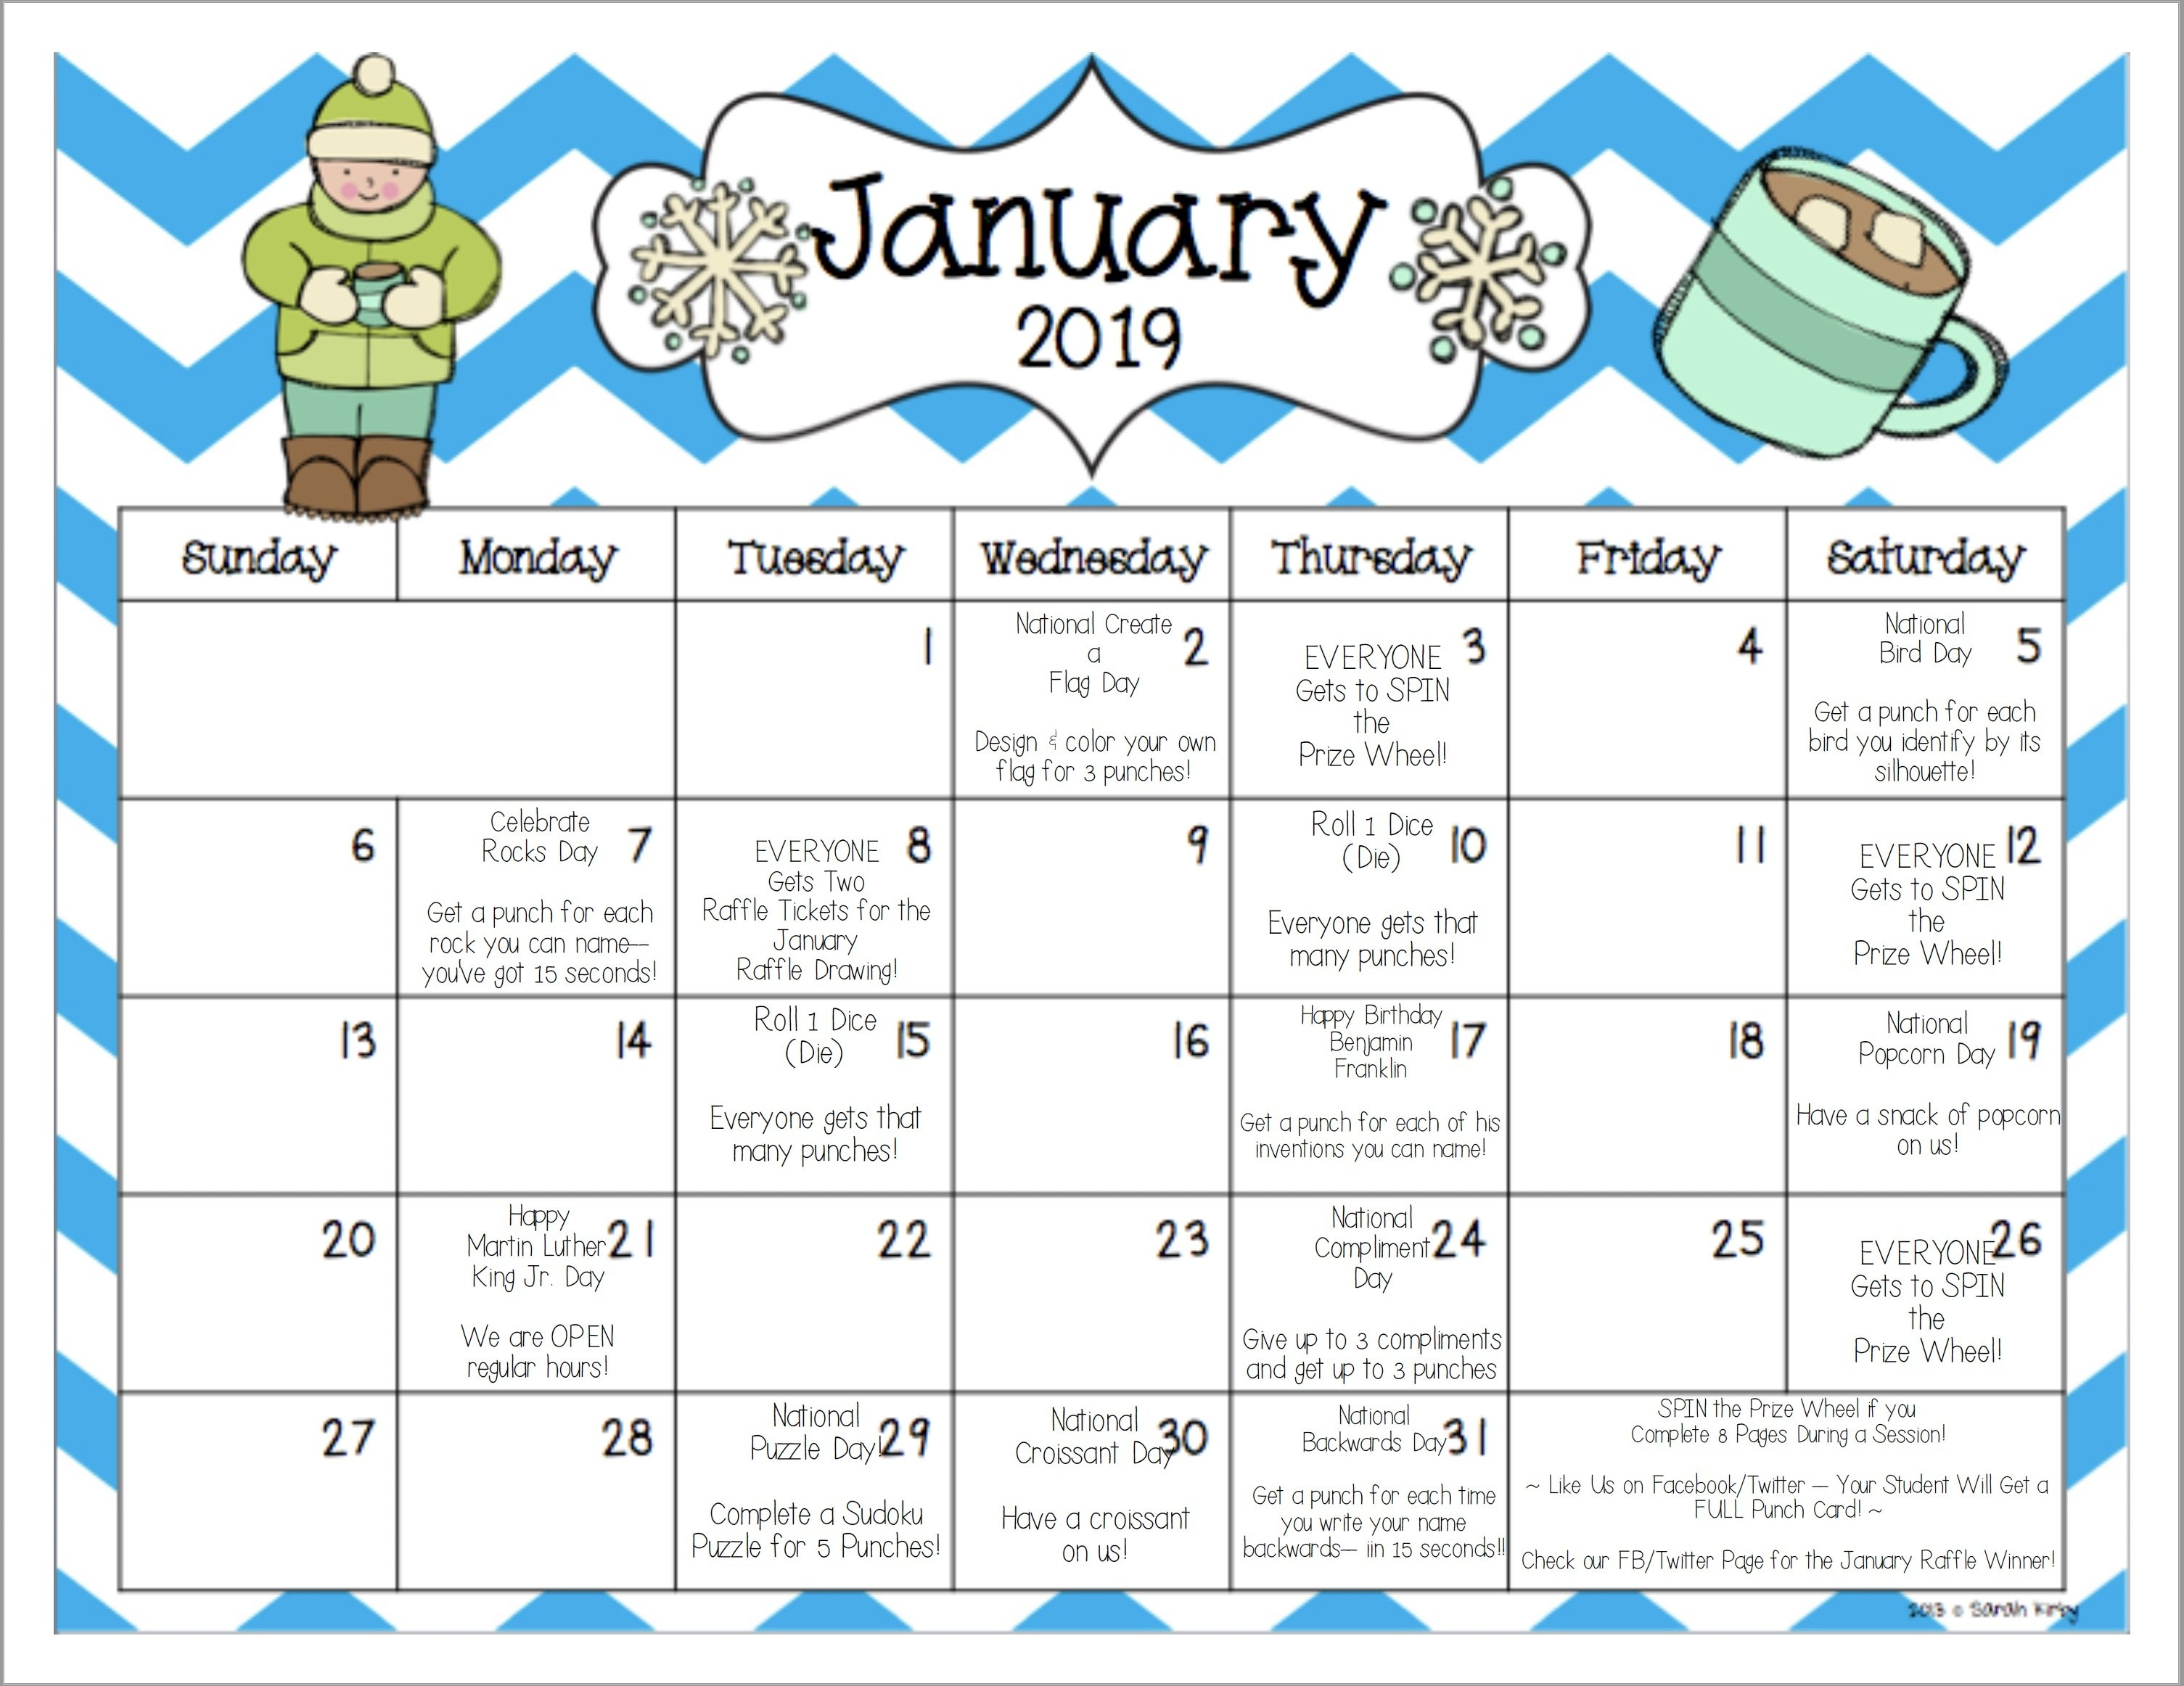 Www.mathnasium/january 2019 Fun Calendar | Mathnasium Rock N Roll Calendar 2019